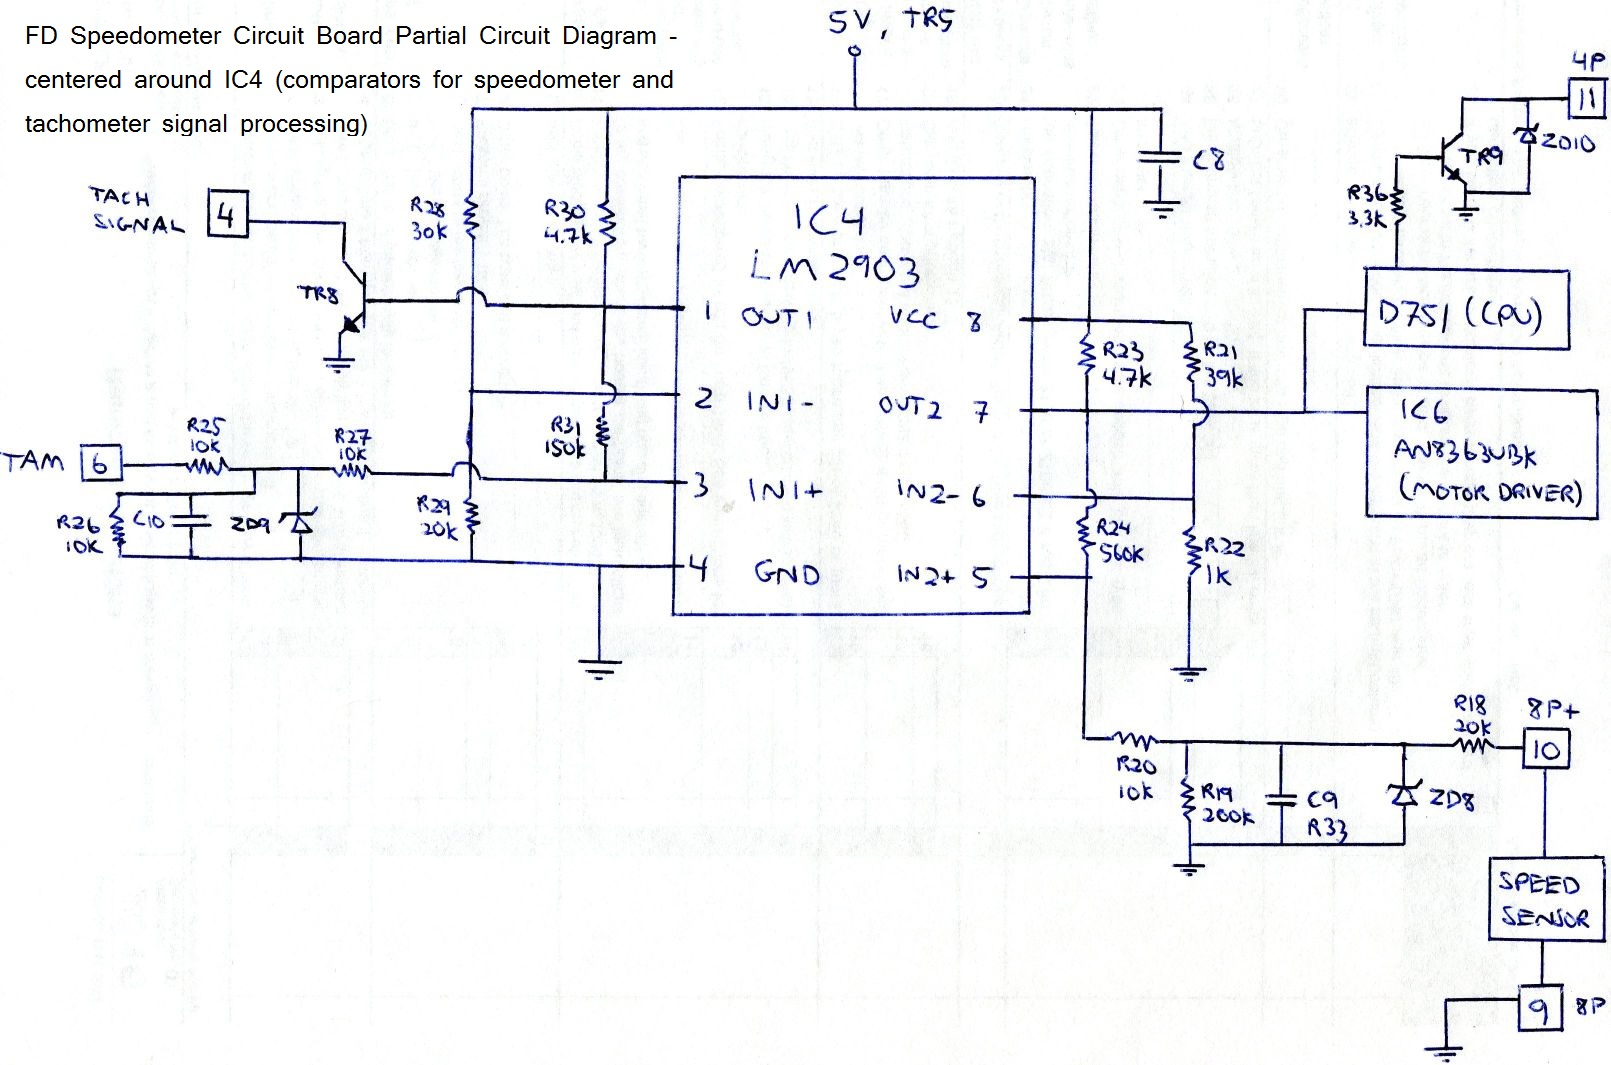 hight resolution of extremely simple fd tach odometer repair fd speedo board ic4